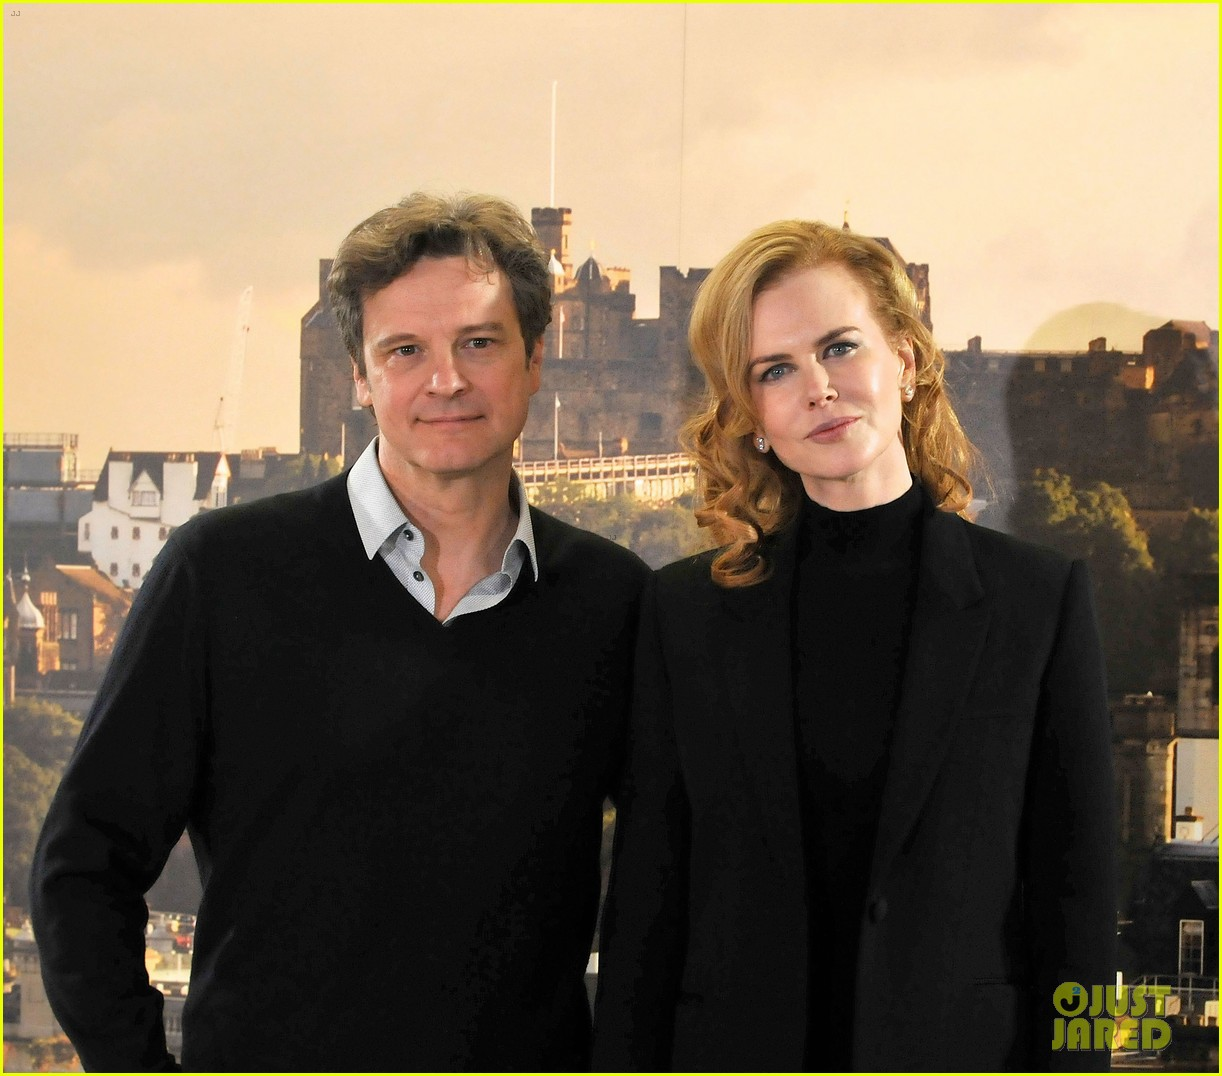 nicole kidman the railway man edinburgh photo call 10